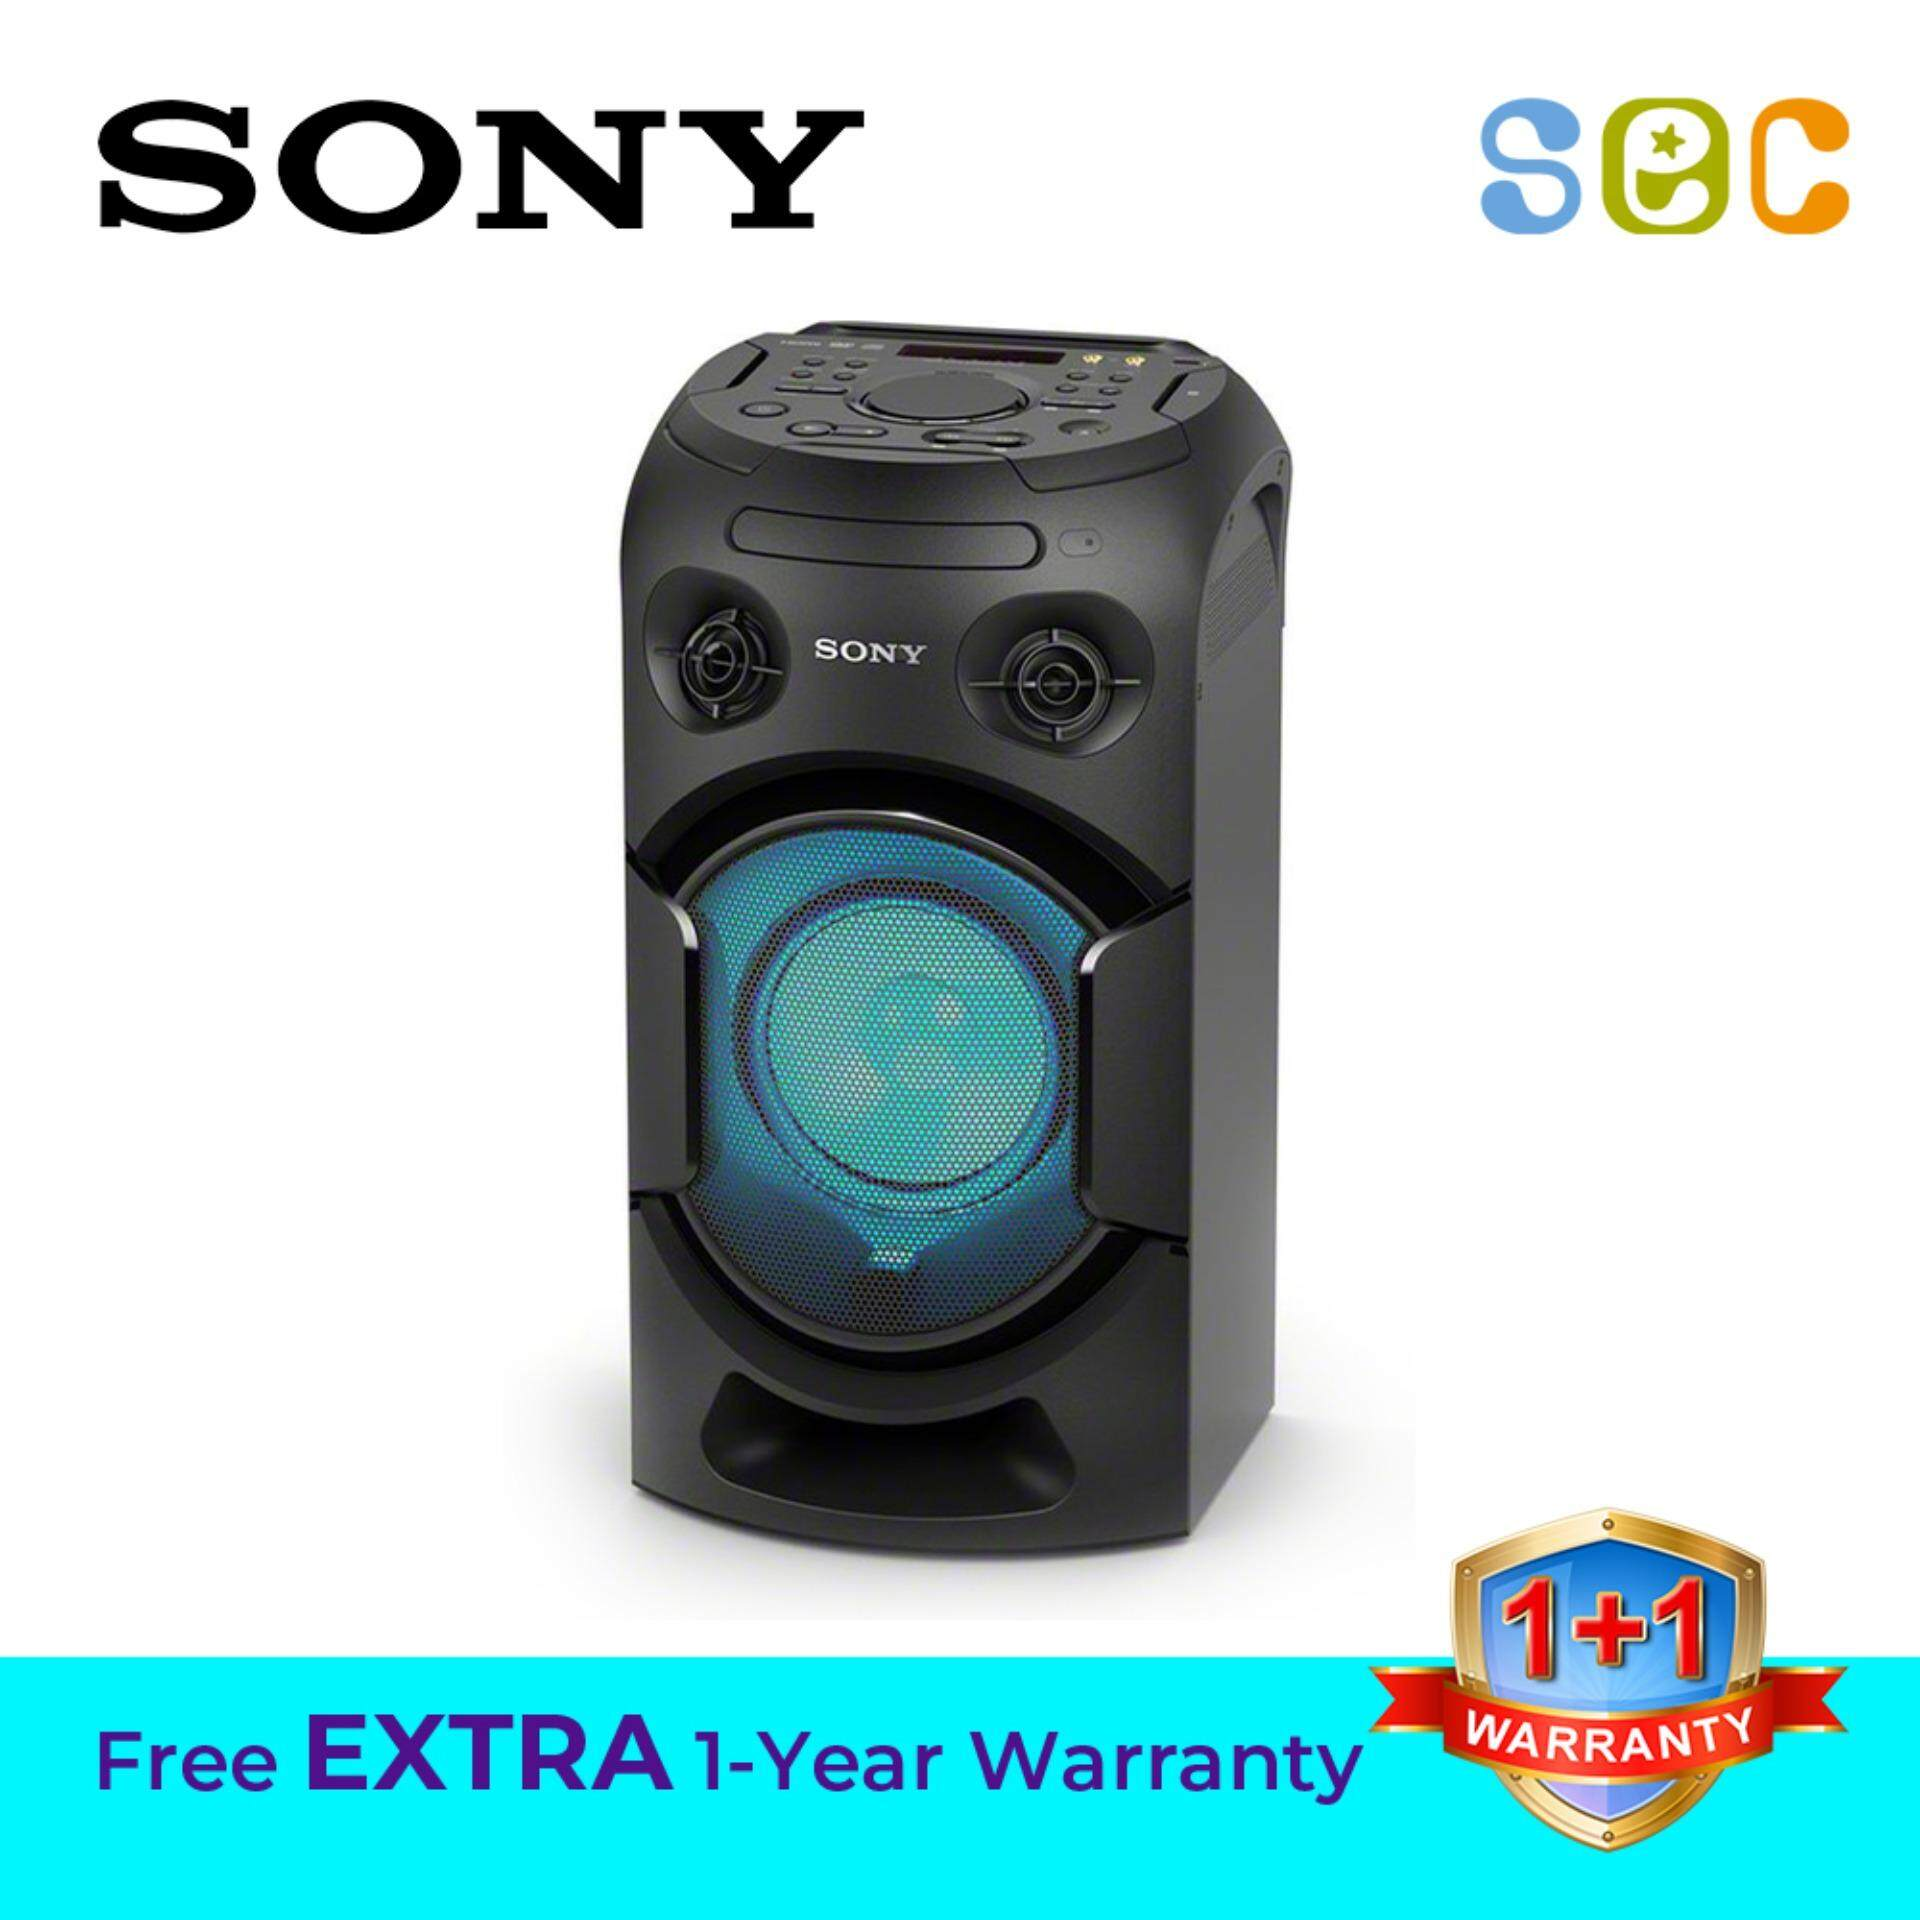 Sony High Power Audio System, Mhc-V21 By Secmall.